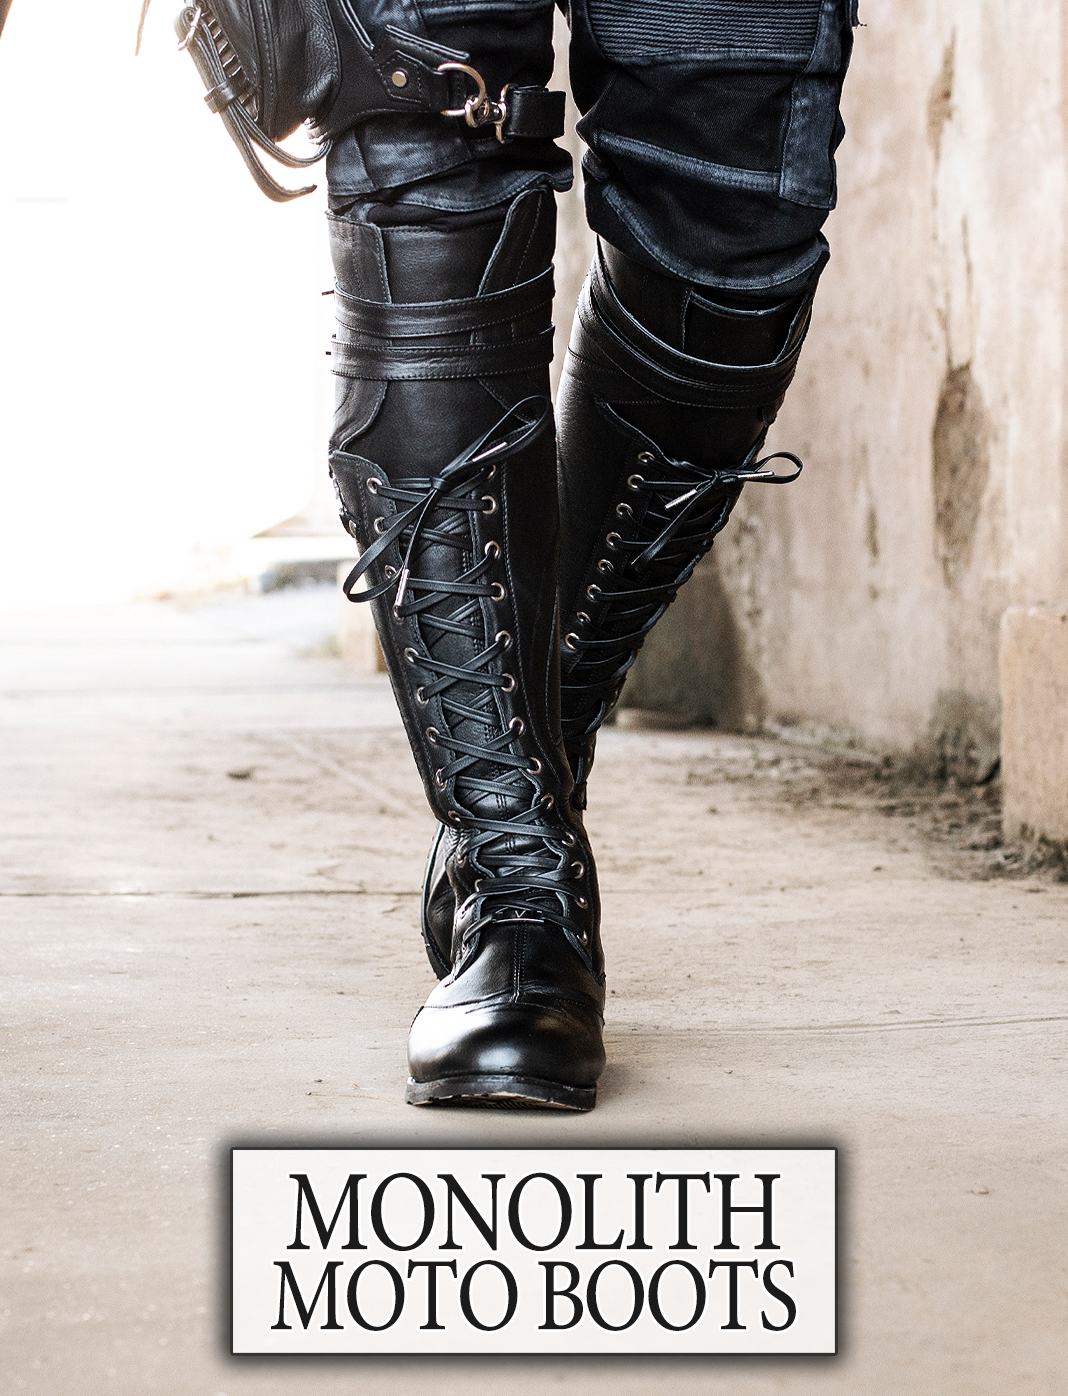 2020-monolith-boots-mobile-banner.png